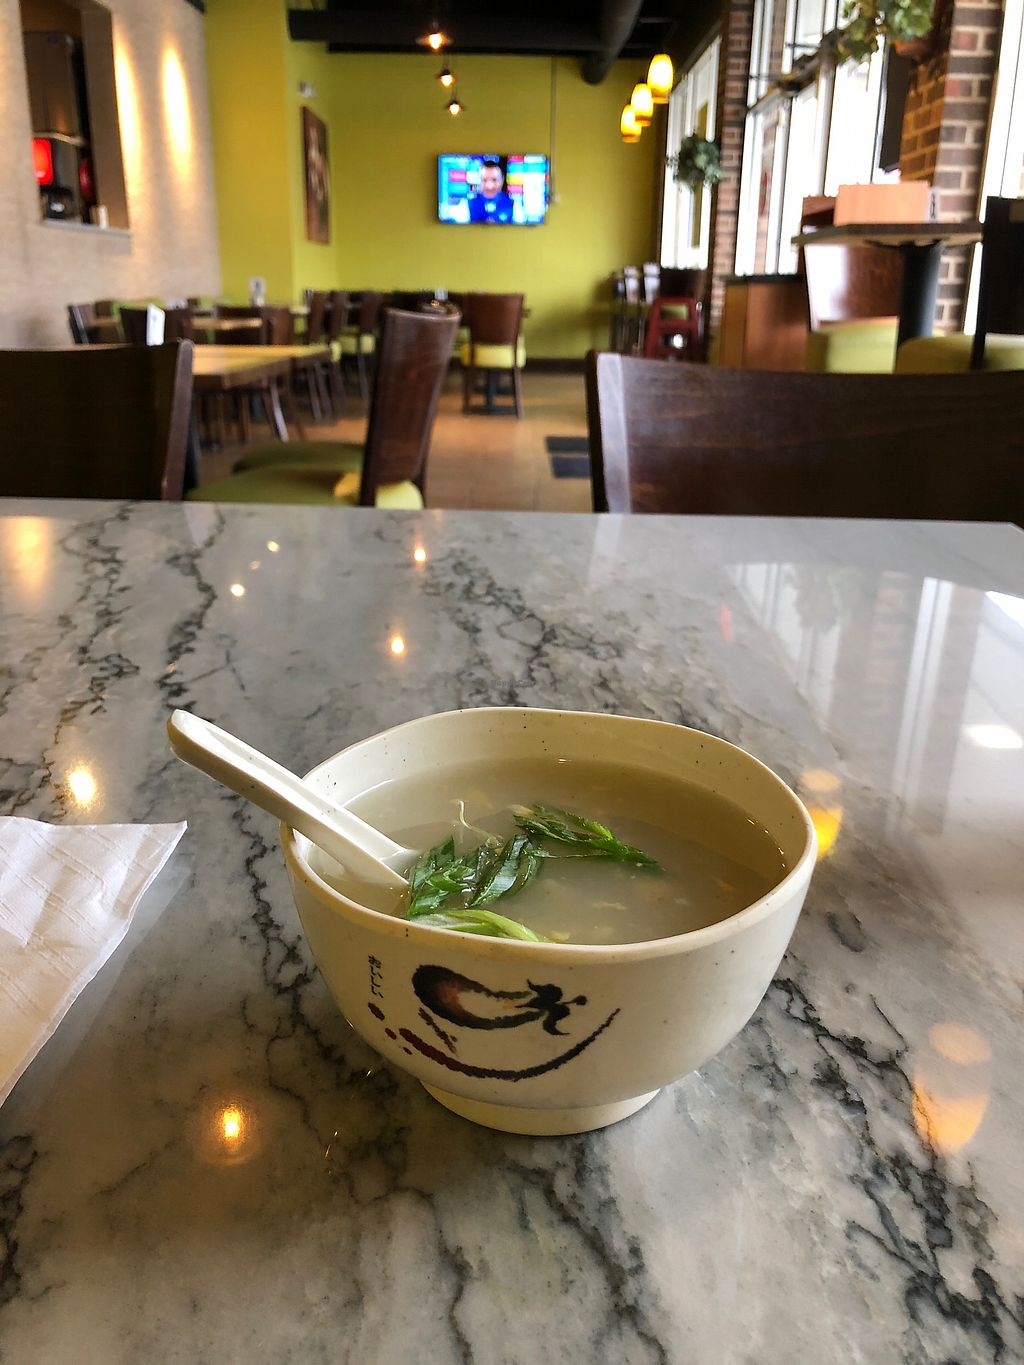 """Photo of Wok N Chop  by <a href=""""/members/profile/LeifEv"""">LeifEv</a> <br/>Corn Soup in Lunch Special <br/> April 9, 2018  - <a href='/contact/abuse/image/116232/383042'>Report</a>"""